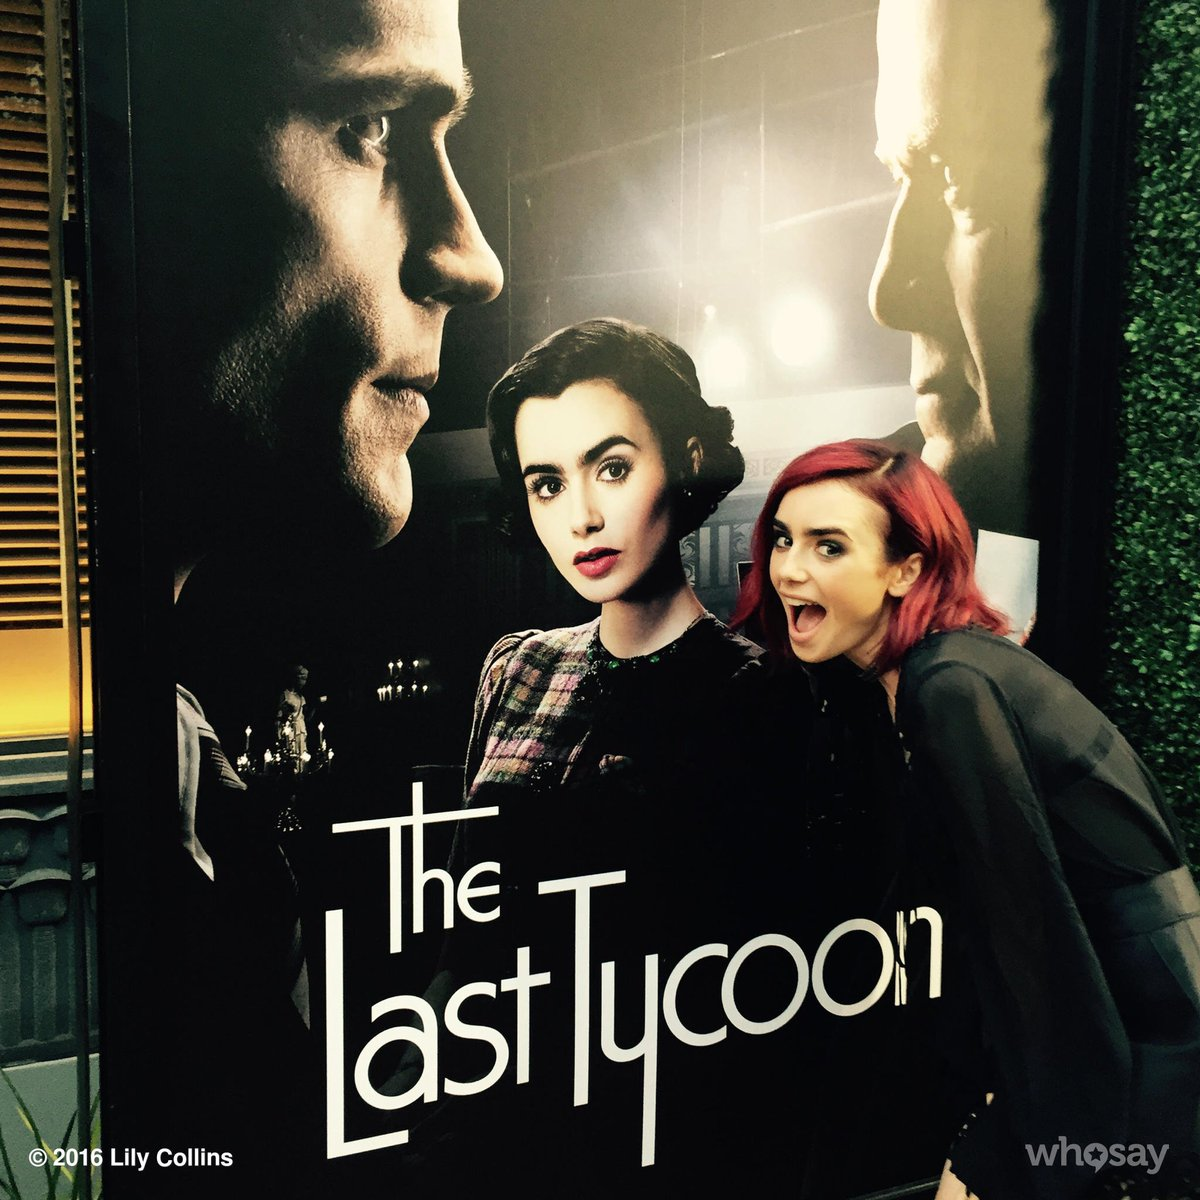 When Celia from the 1930's met Celia from the 21st century #TheLastTycoon... https://t.co/YmHegdo3YP